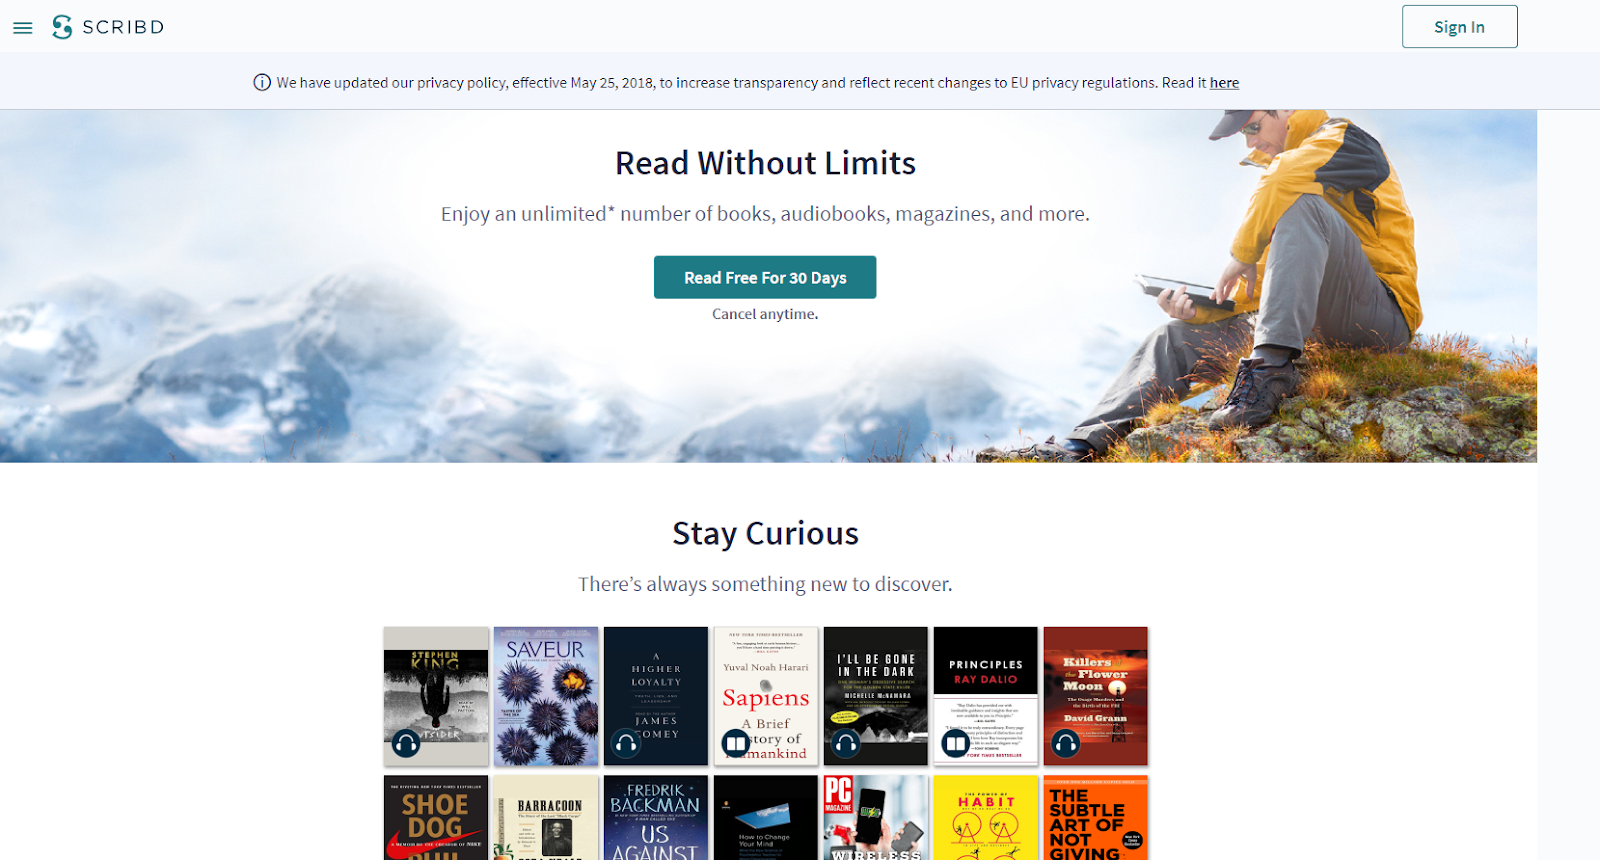 17 Powerful Issuu Alternatives Nobody Told You About (1 BIG